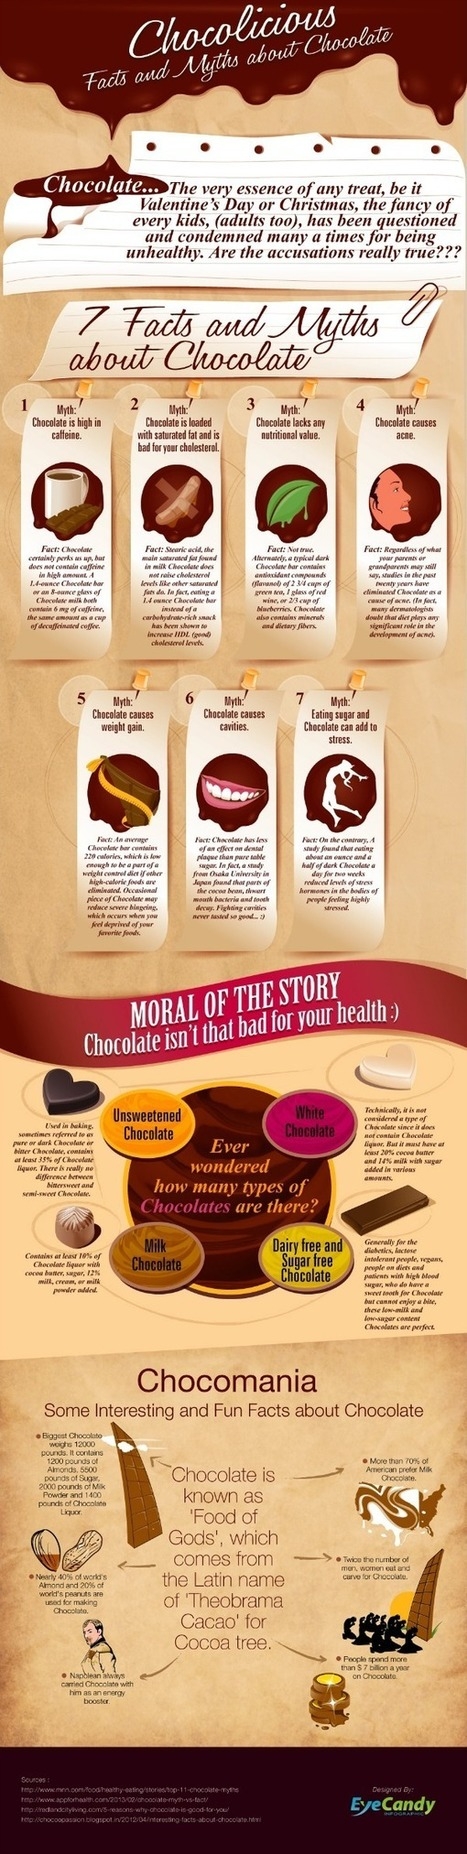 Science Takes It Back, Chocolate Doesn't Cause Acne + More Chocolate Myths Debunked - Foodbeast | learning.it! | Scoop.it